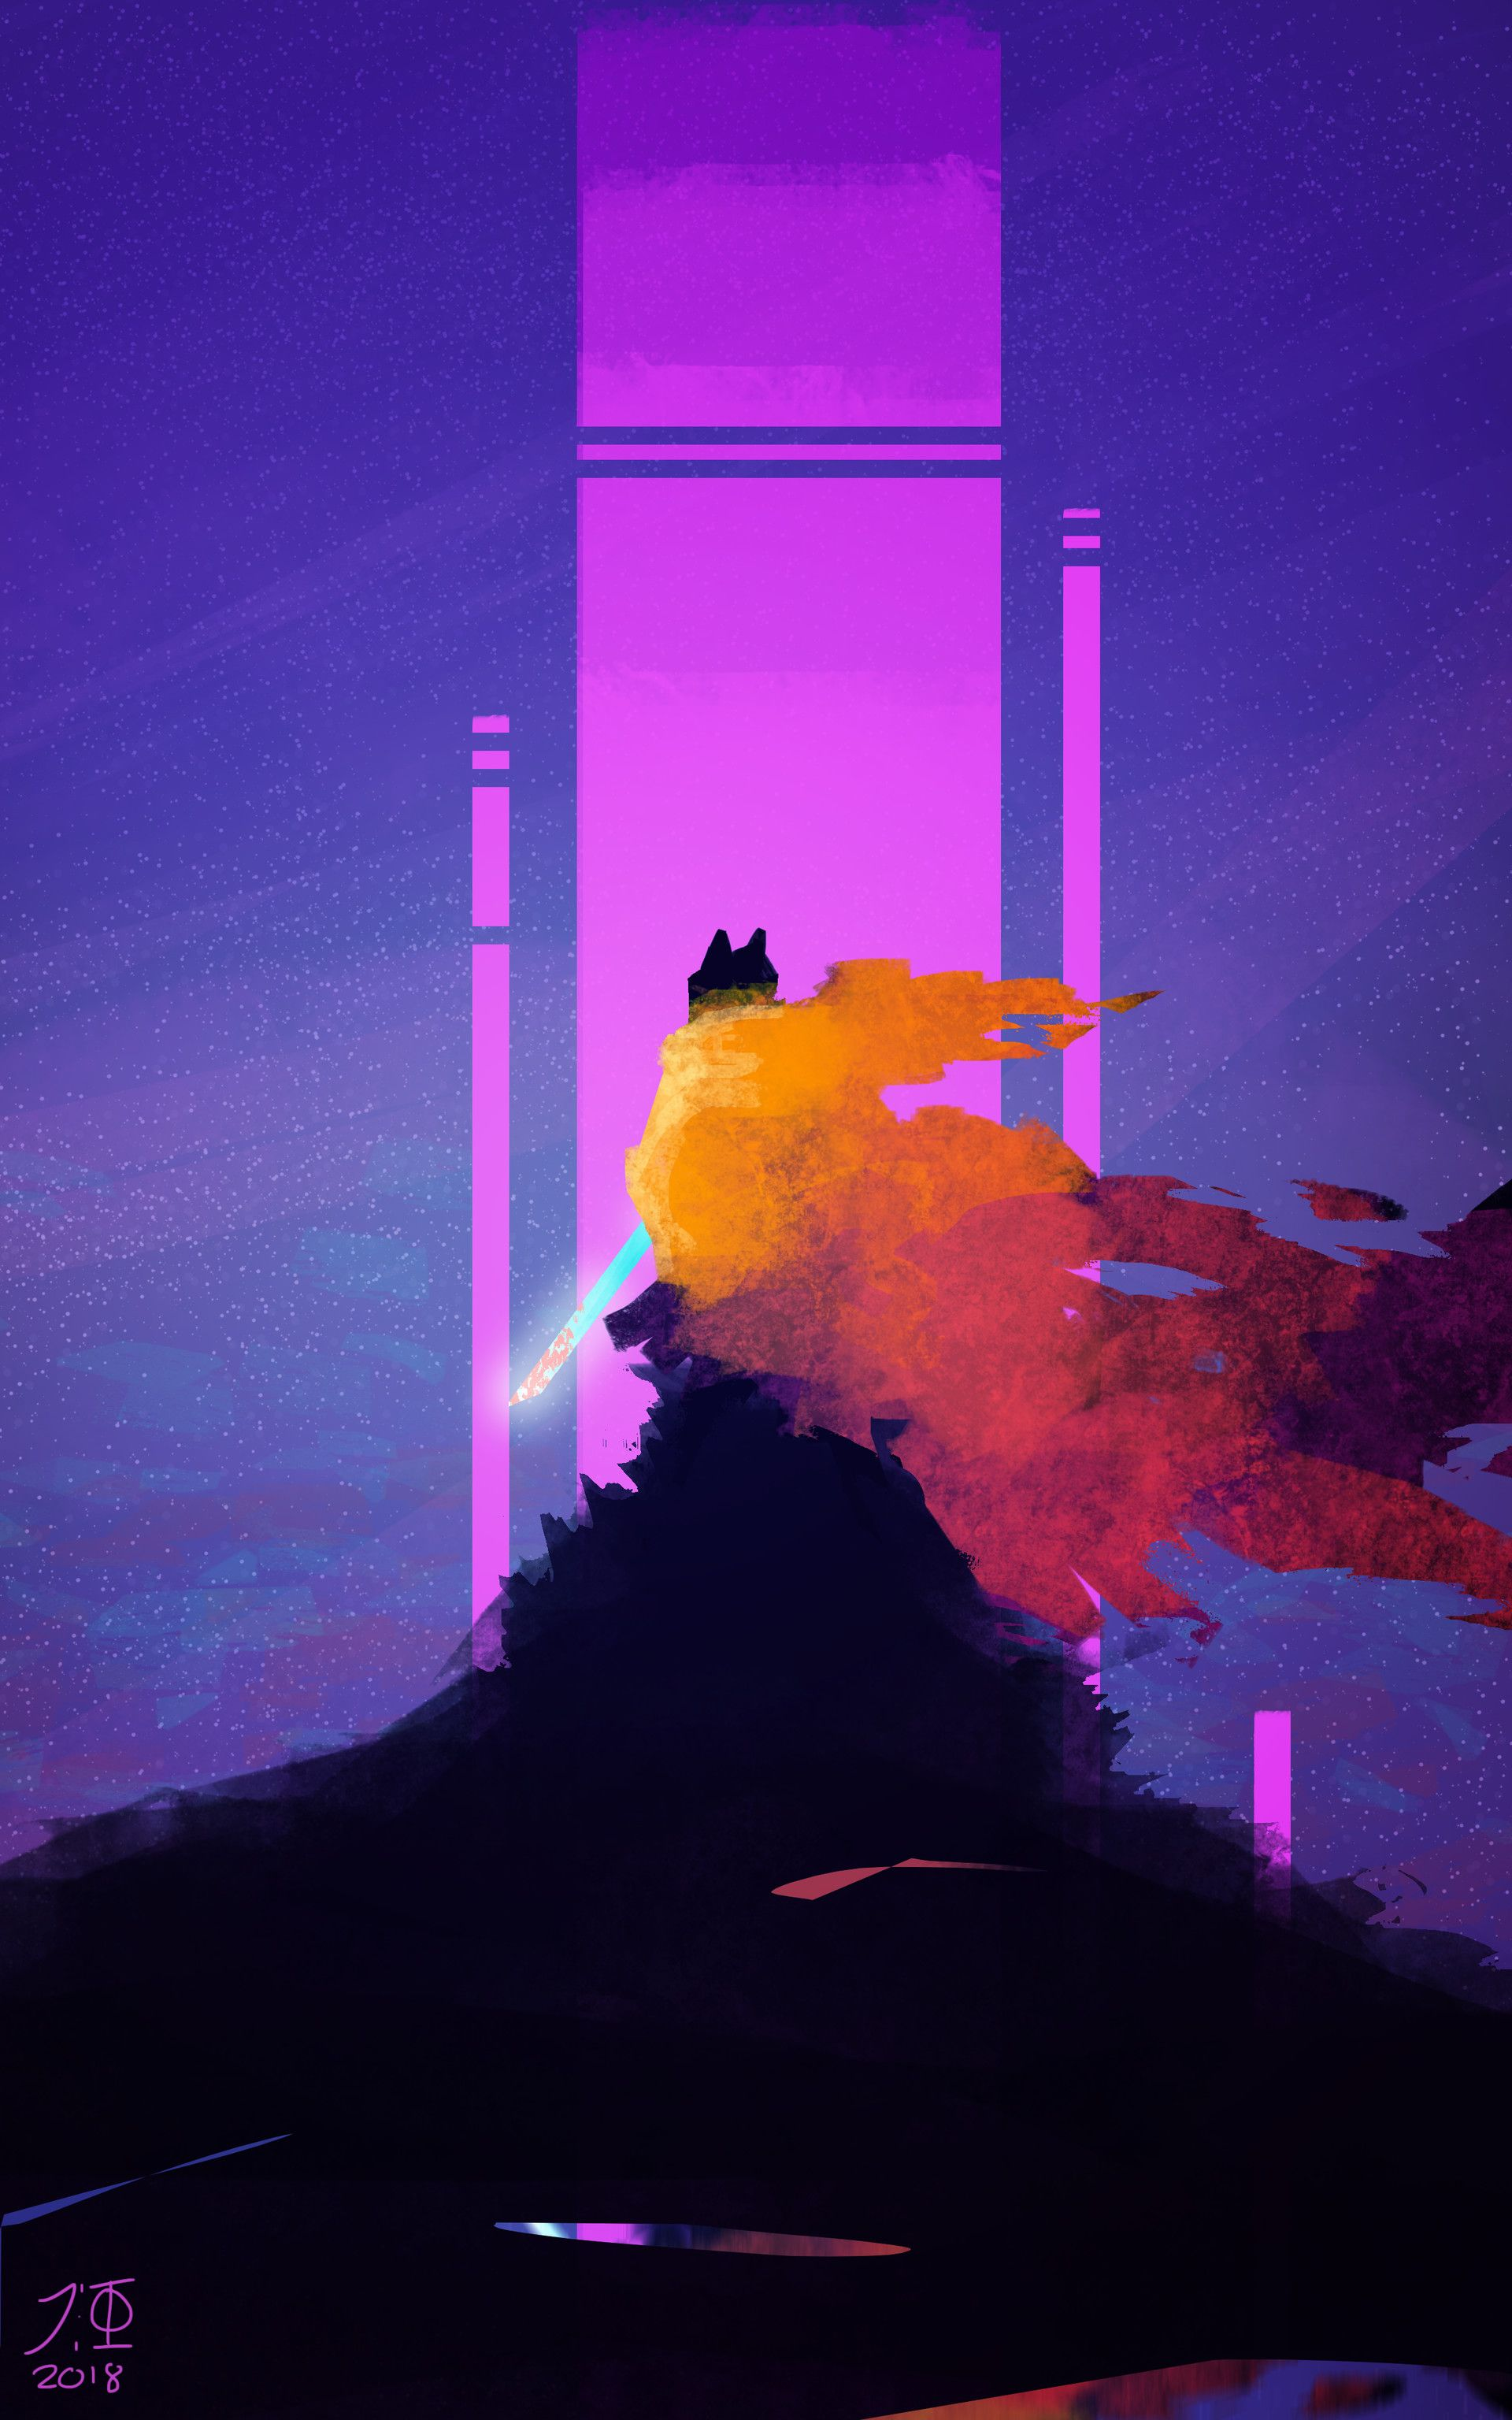 Artstation Hyper Light Drifter John Farrington Hyper Light Drifter Wallpaper Drifter Dark Fantasy Art